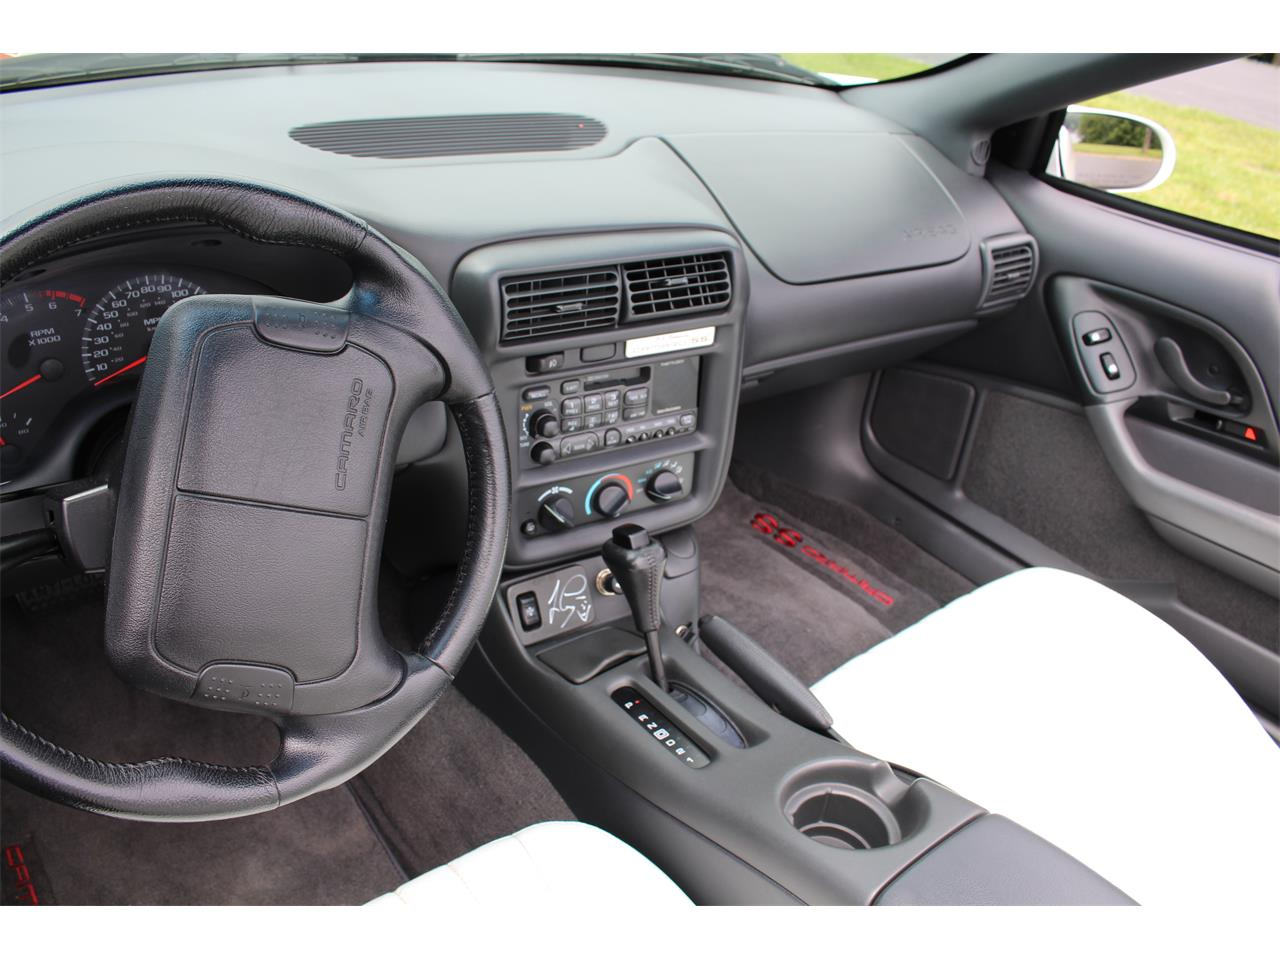 Large Picture of 1997 Chevrolet Camaro RS/SS located in Mount Vernon Ohio Offered by a Private Seller - MZ9G